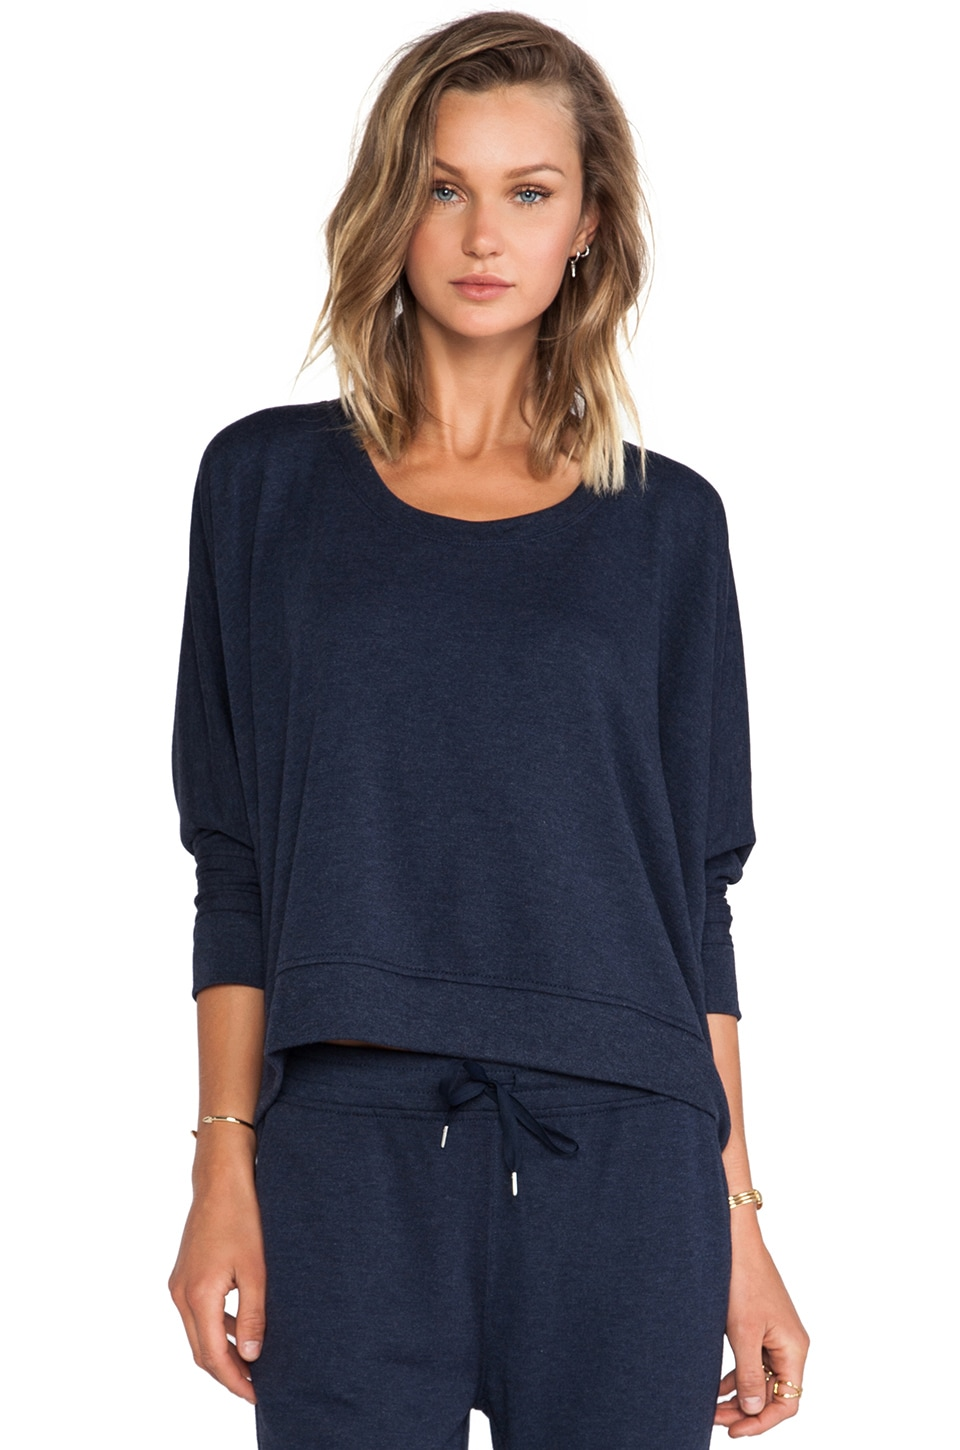 T by Alexander Wang Enzyme Washed French Terry Sweatshirt in Indigo